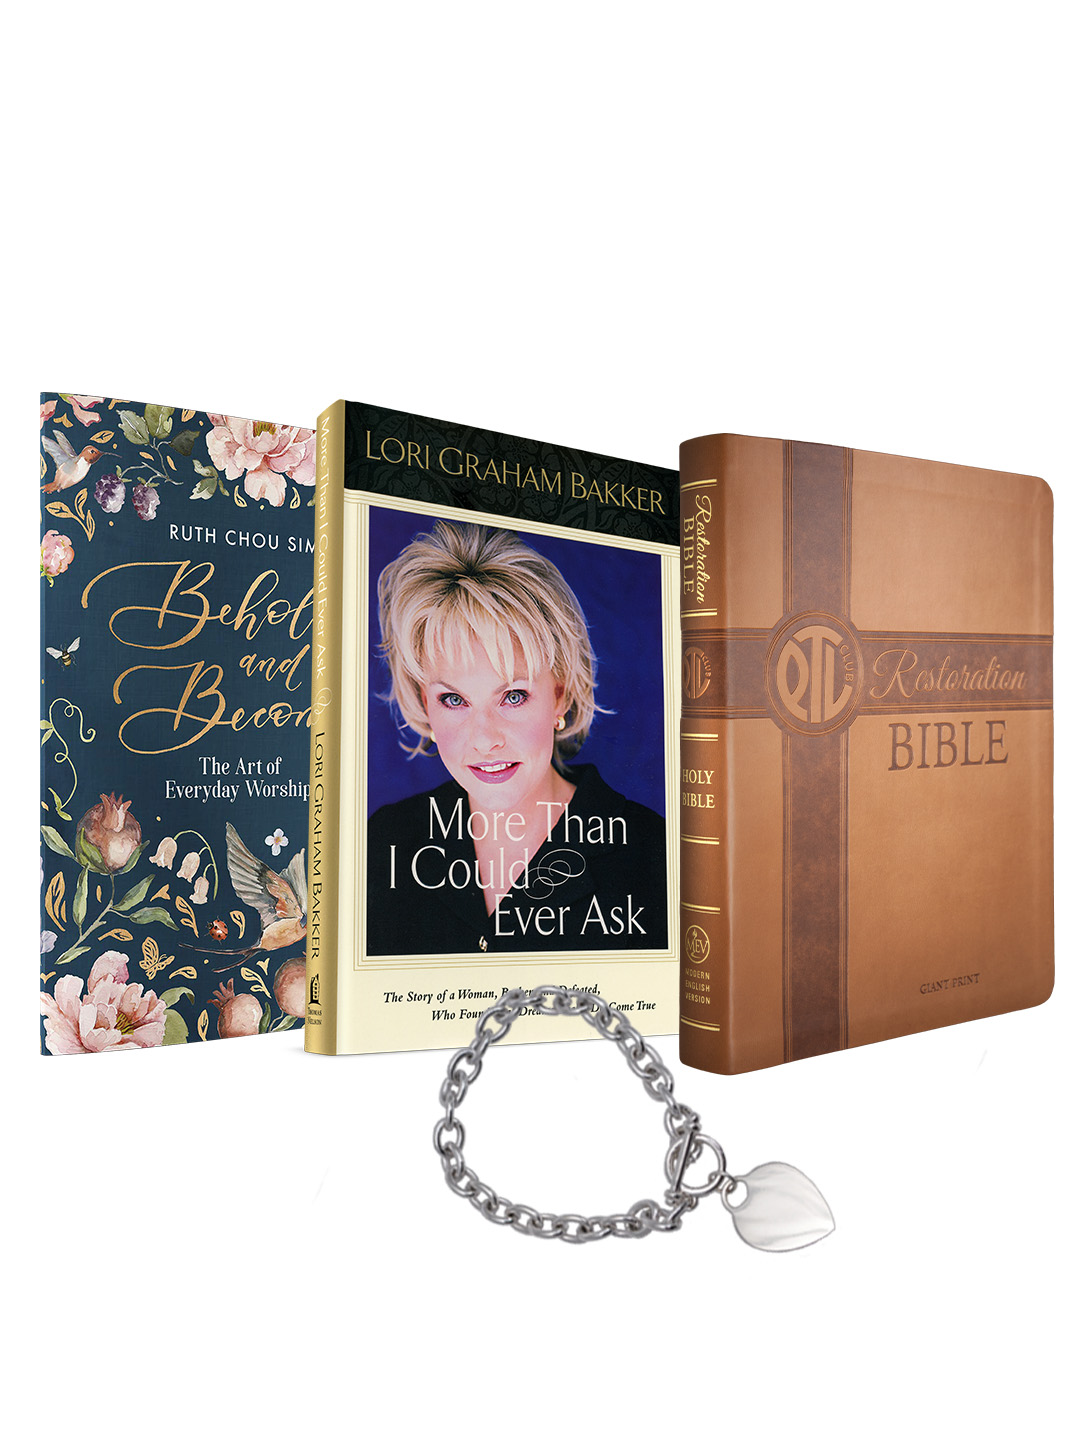 Restoration Bible Beholding & Becoming Birthday Offer